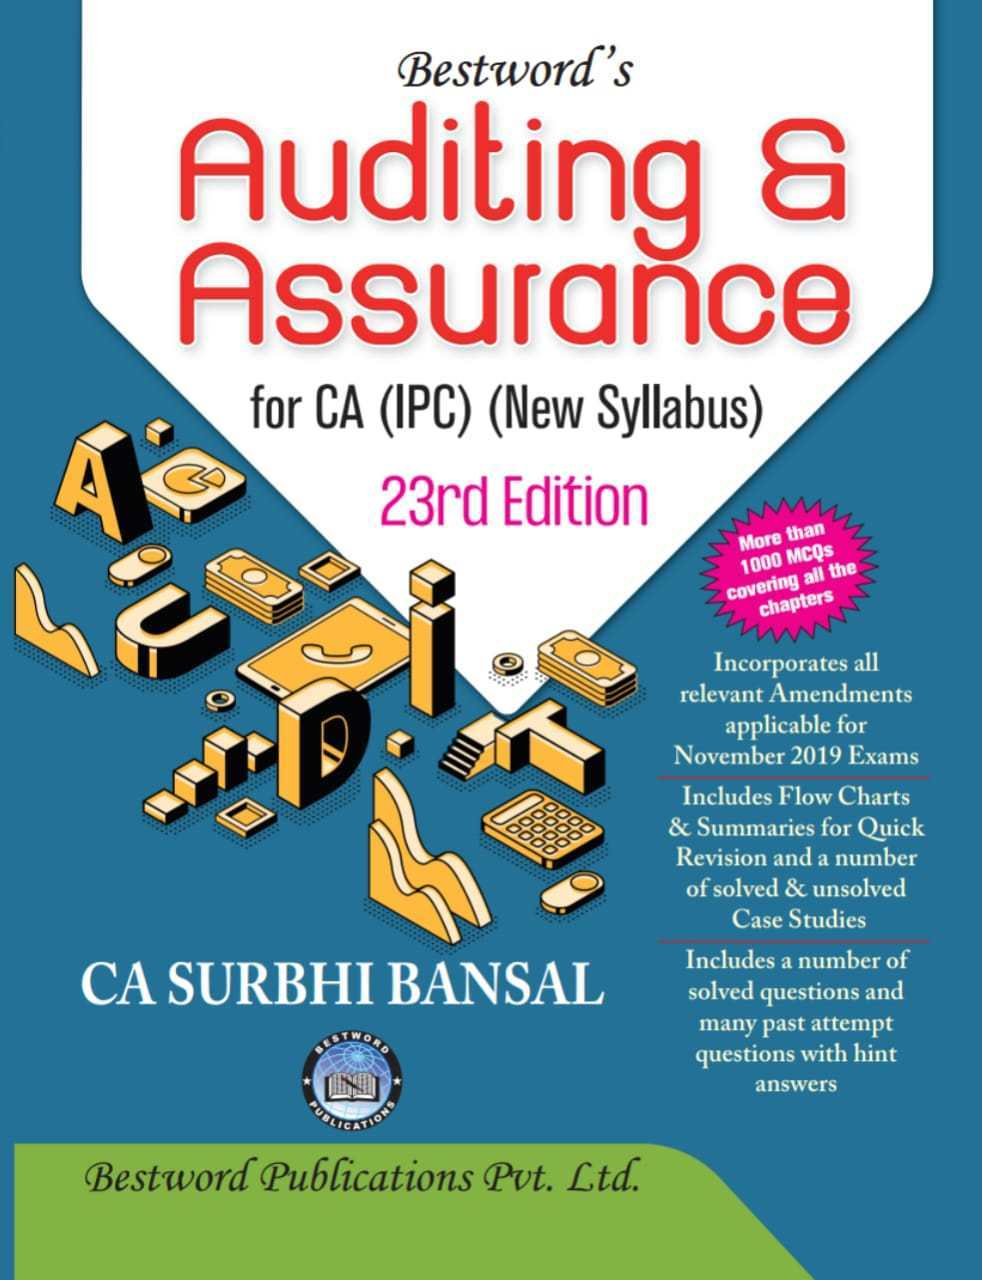 Bestword Auditing and Assurance for CA Intermediate (New Syllabus) by CA Surbhi bansal  for Nov 2019 Exam